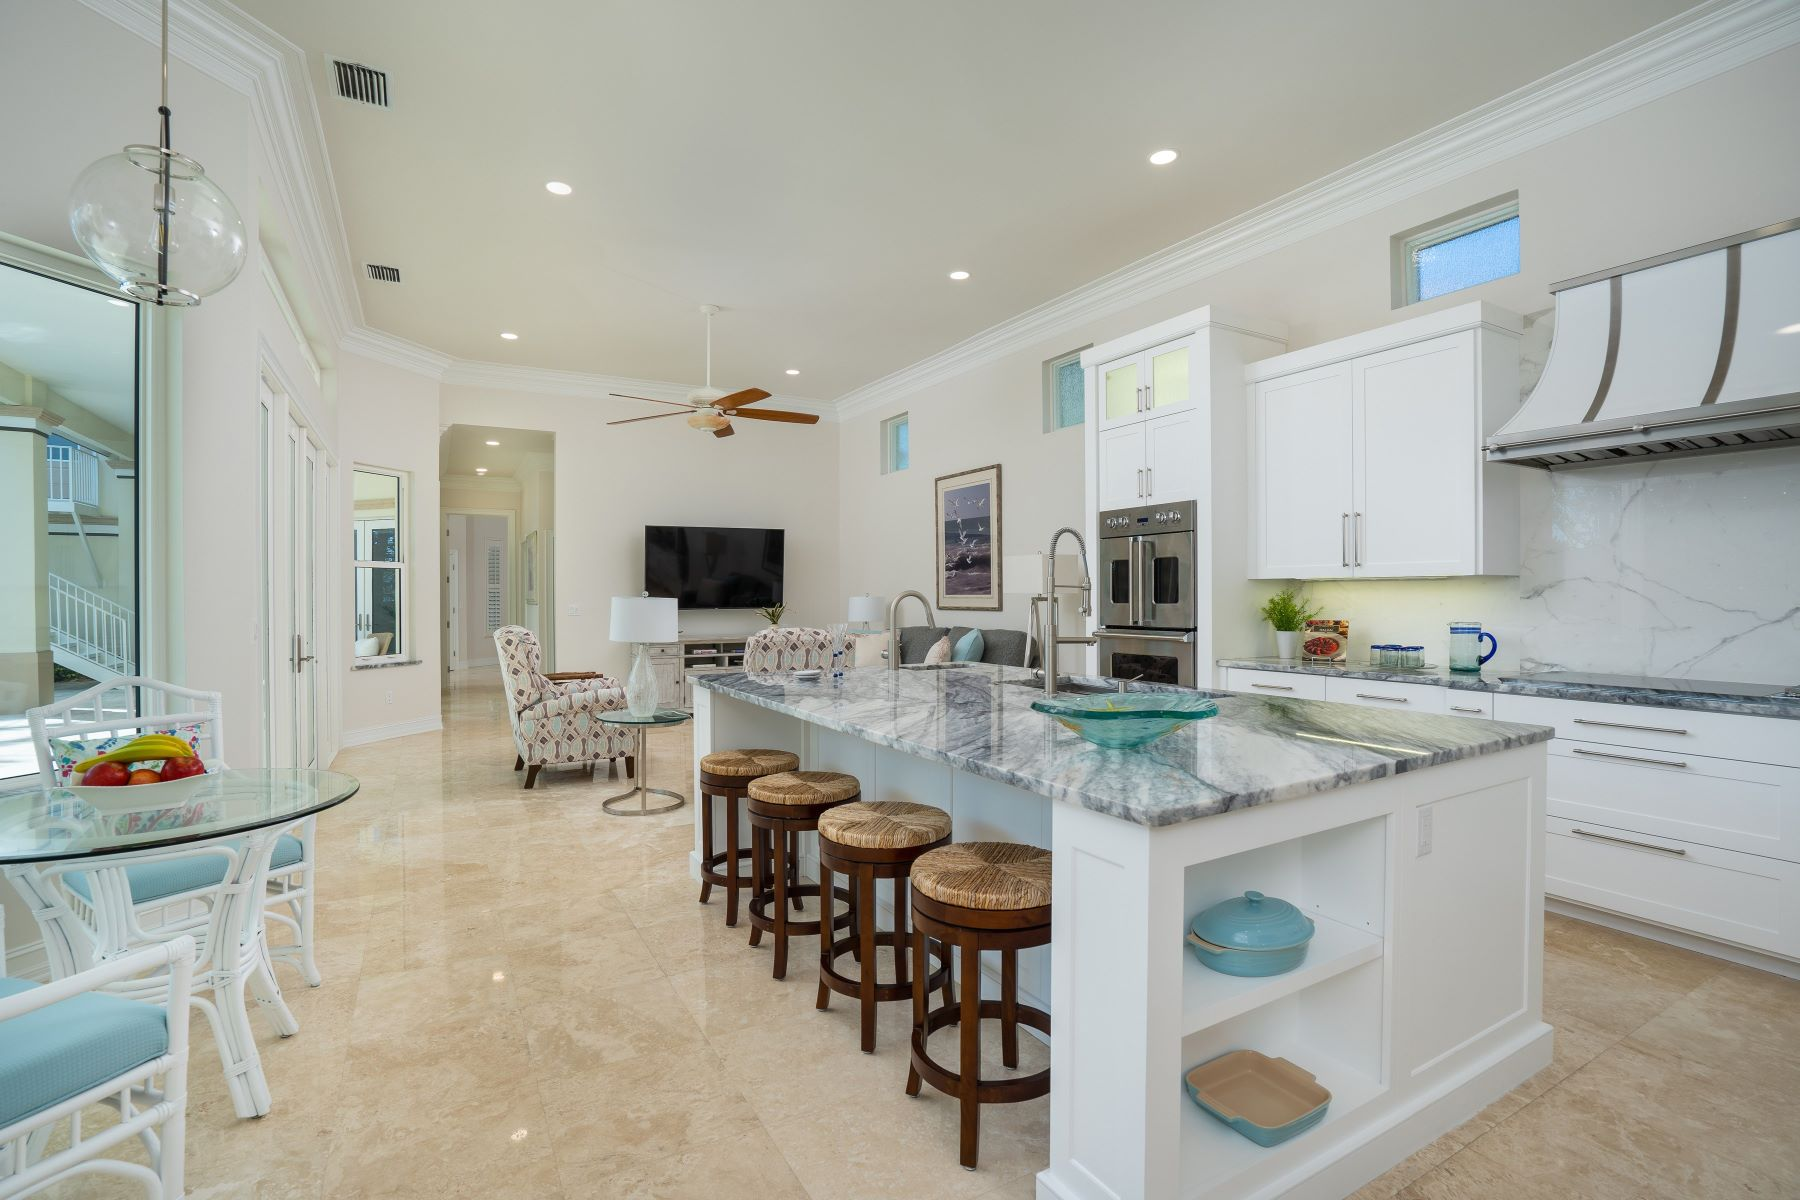 Additional photo for property listing at 151 Mariner Beach Lane Vero Beach, Florida 32963 United States